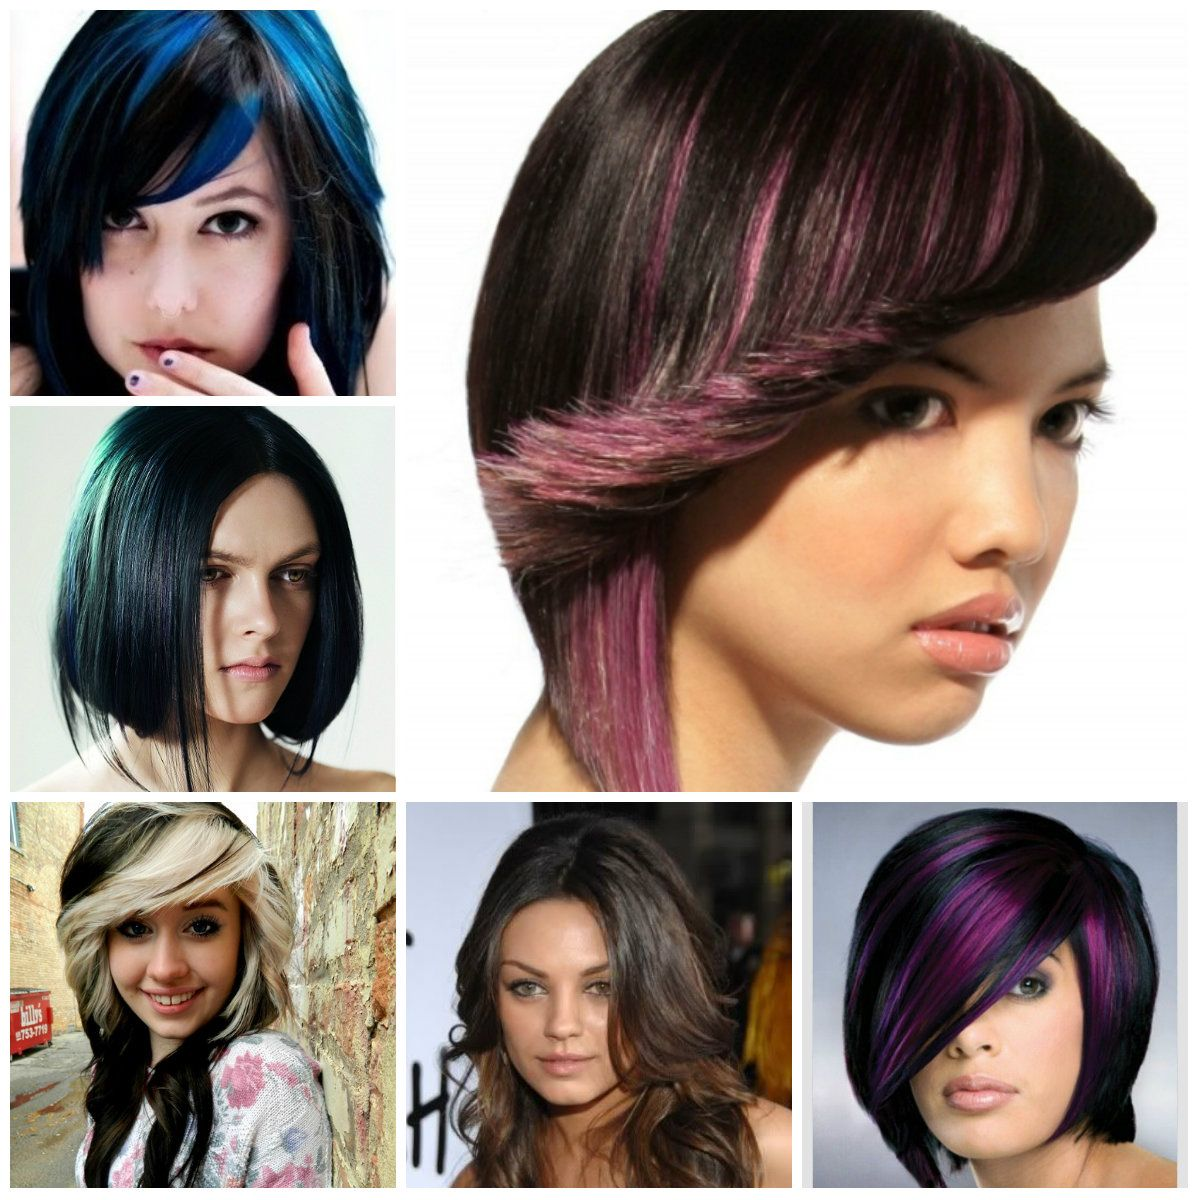 Hairstyles 2016 dark hair - Hair Coloring